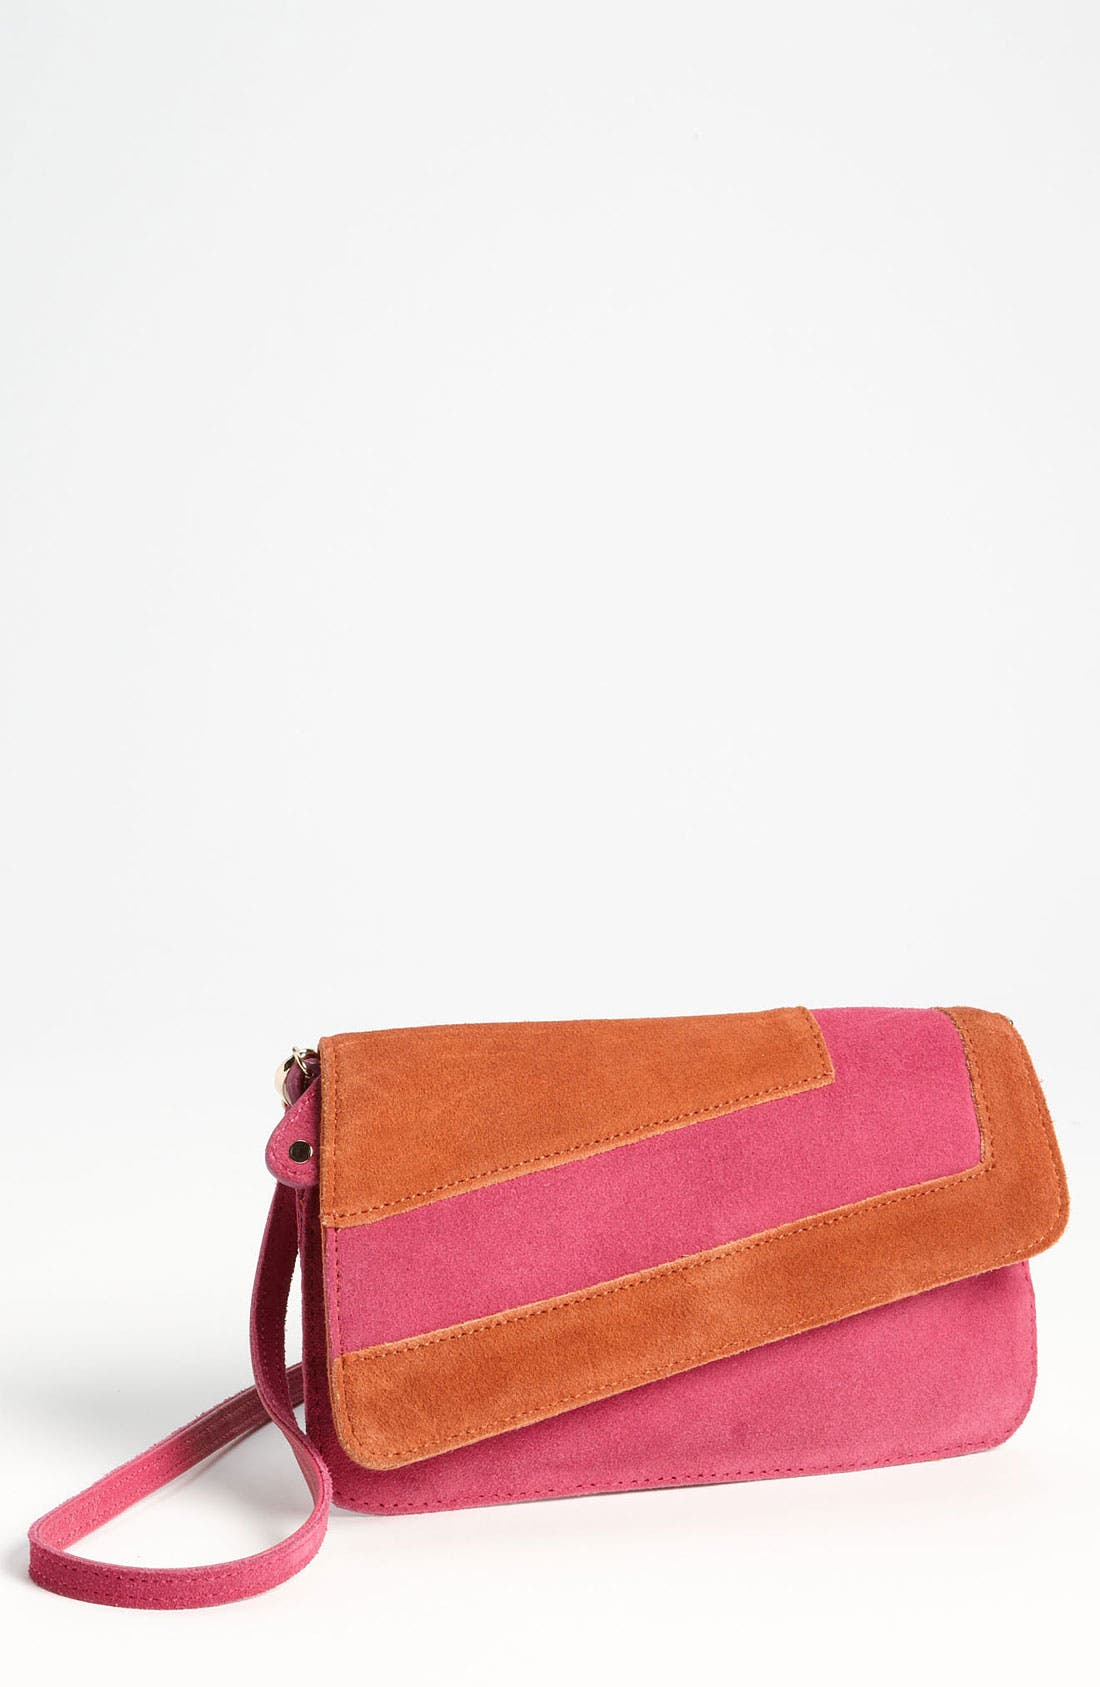 Alternate Image 1 Selected - Danielle Nicole 'Madison' Suede Crossbody Bag